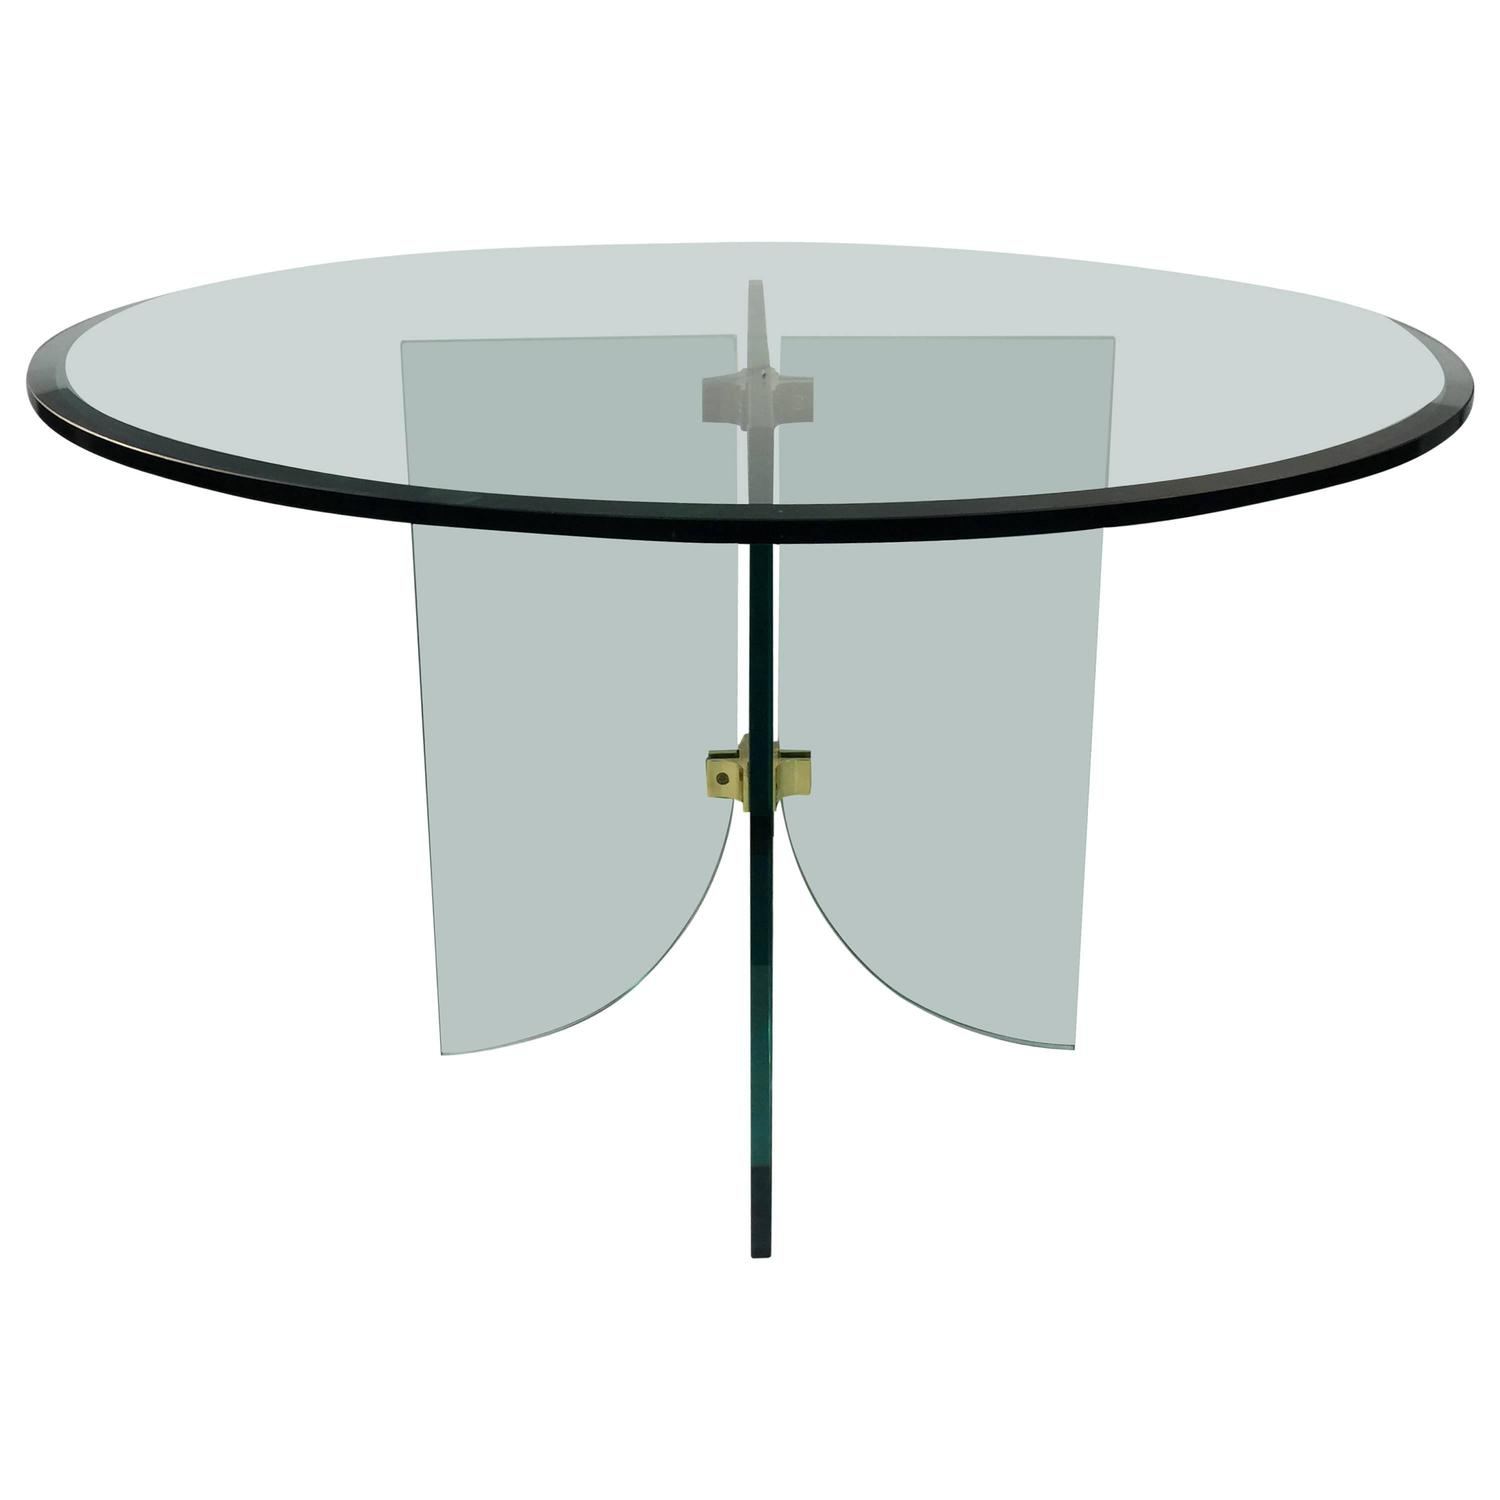 Phenomenal Pace Pedestal Glass Dining Table Circa 1970 For Sale At